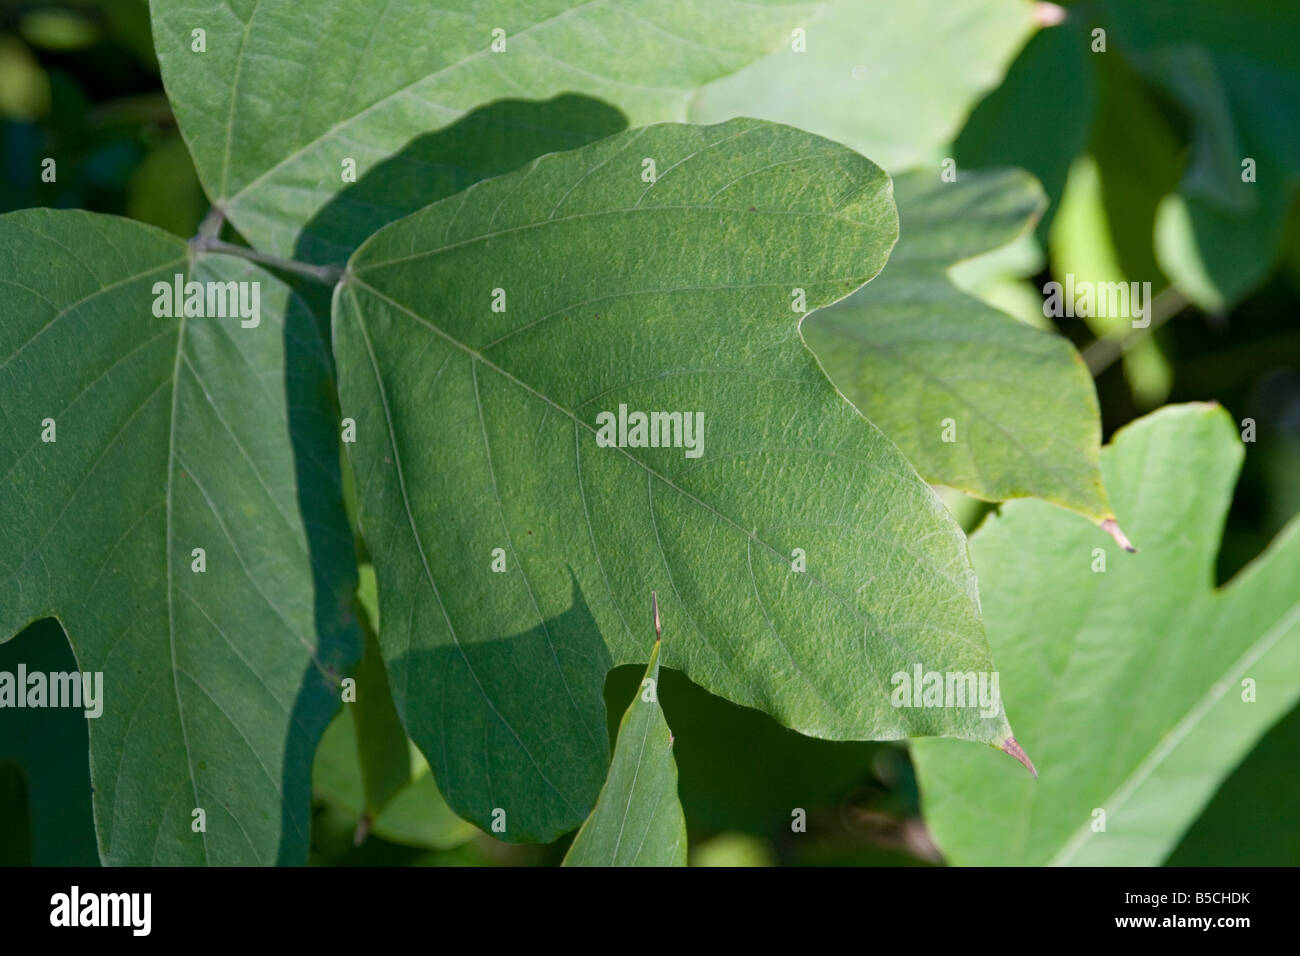 Axil Blade Chlorophyll green Leaf Petiole photosynthesis plant Stipule Tip tree vein veins yellow - Stock Image